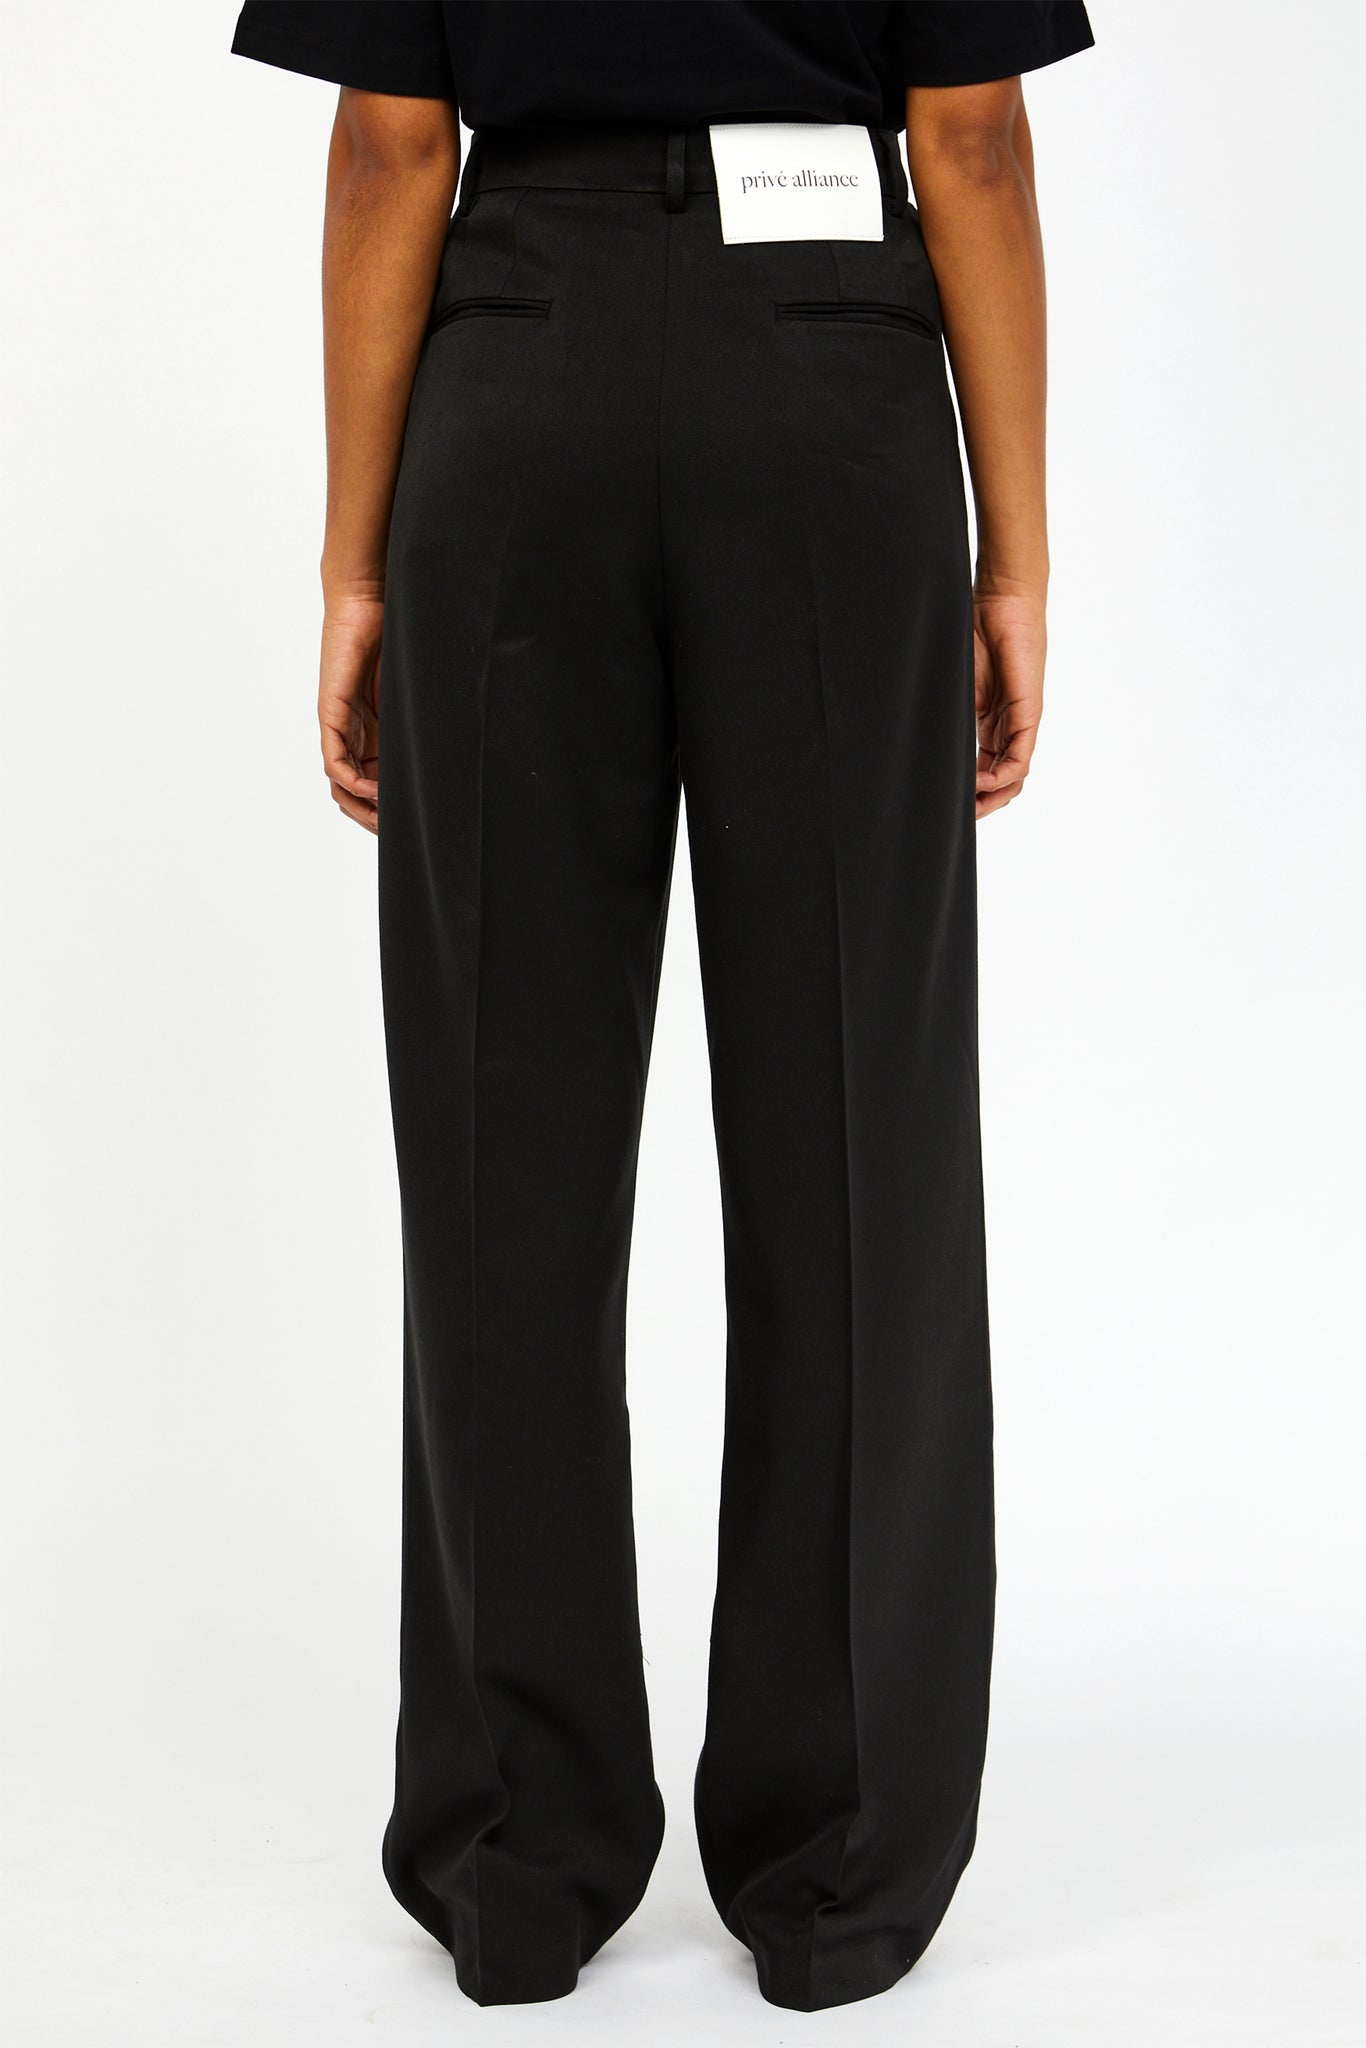 Privé Alliance Women's Metro Pants - Black